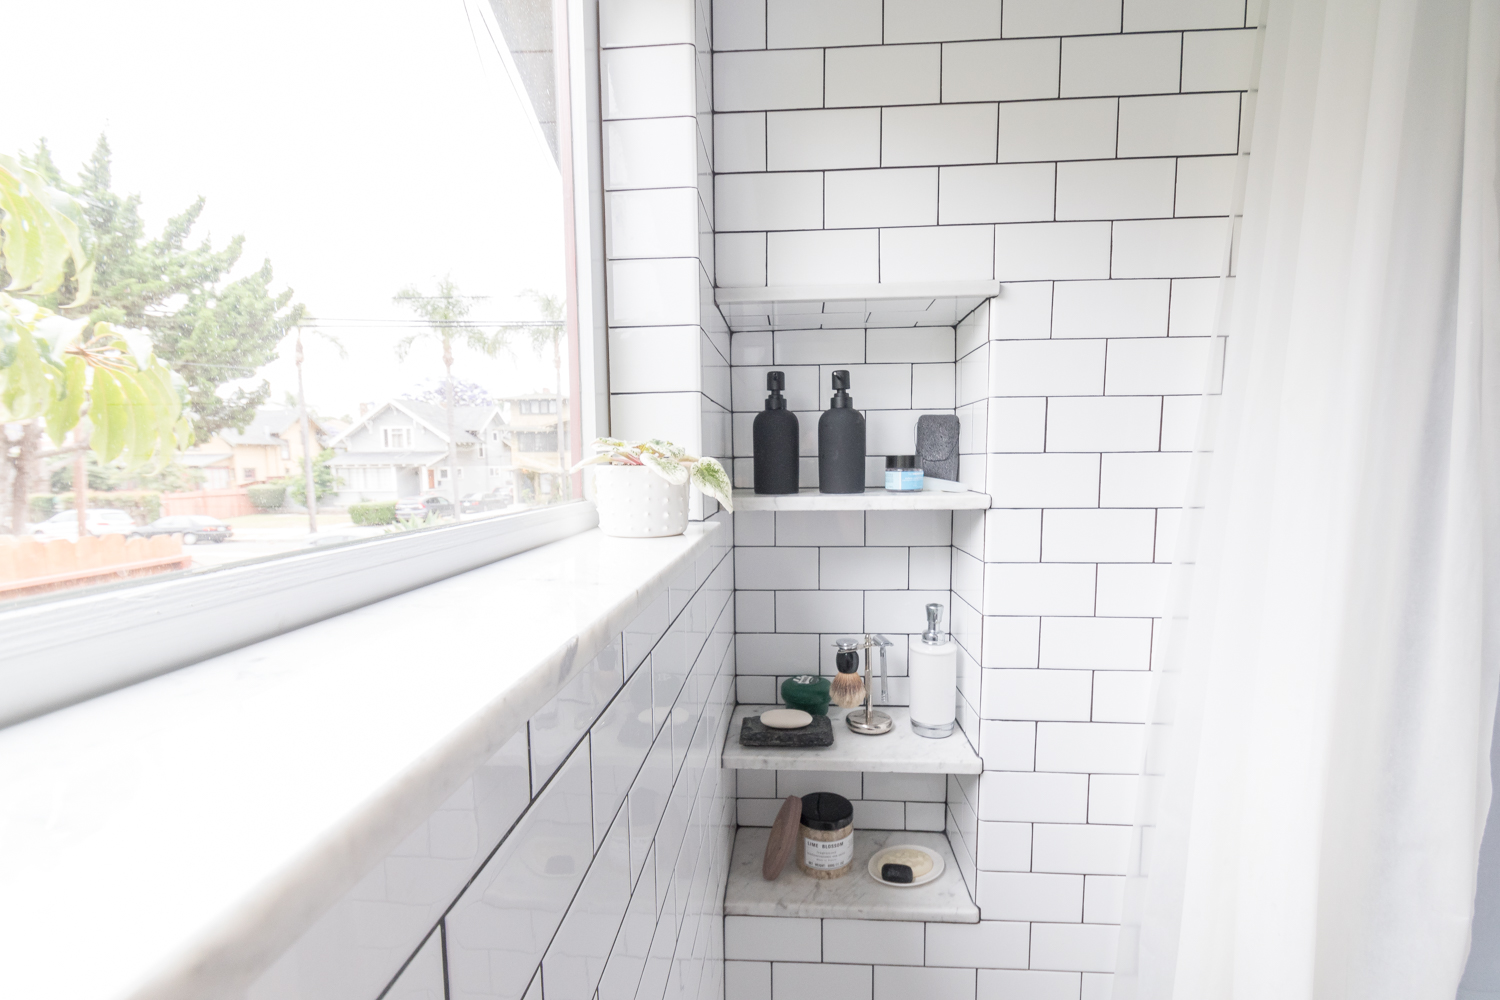 Marble sill and shelves in shower subway tile